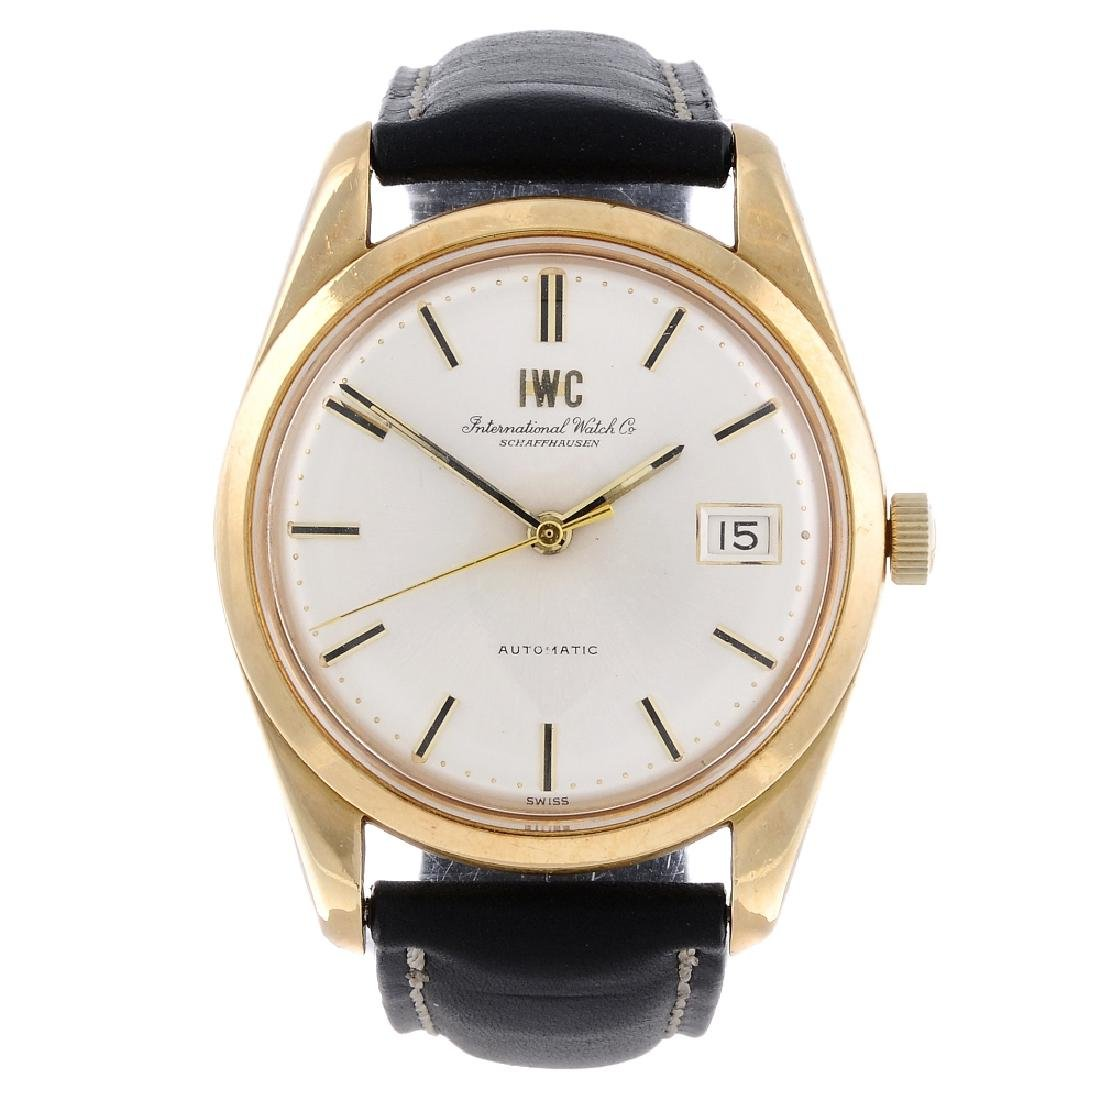 IWC - a gentleman's wrist watch. Yellow metal case with